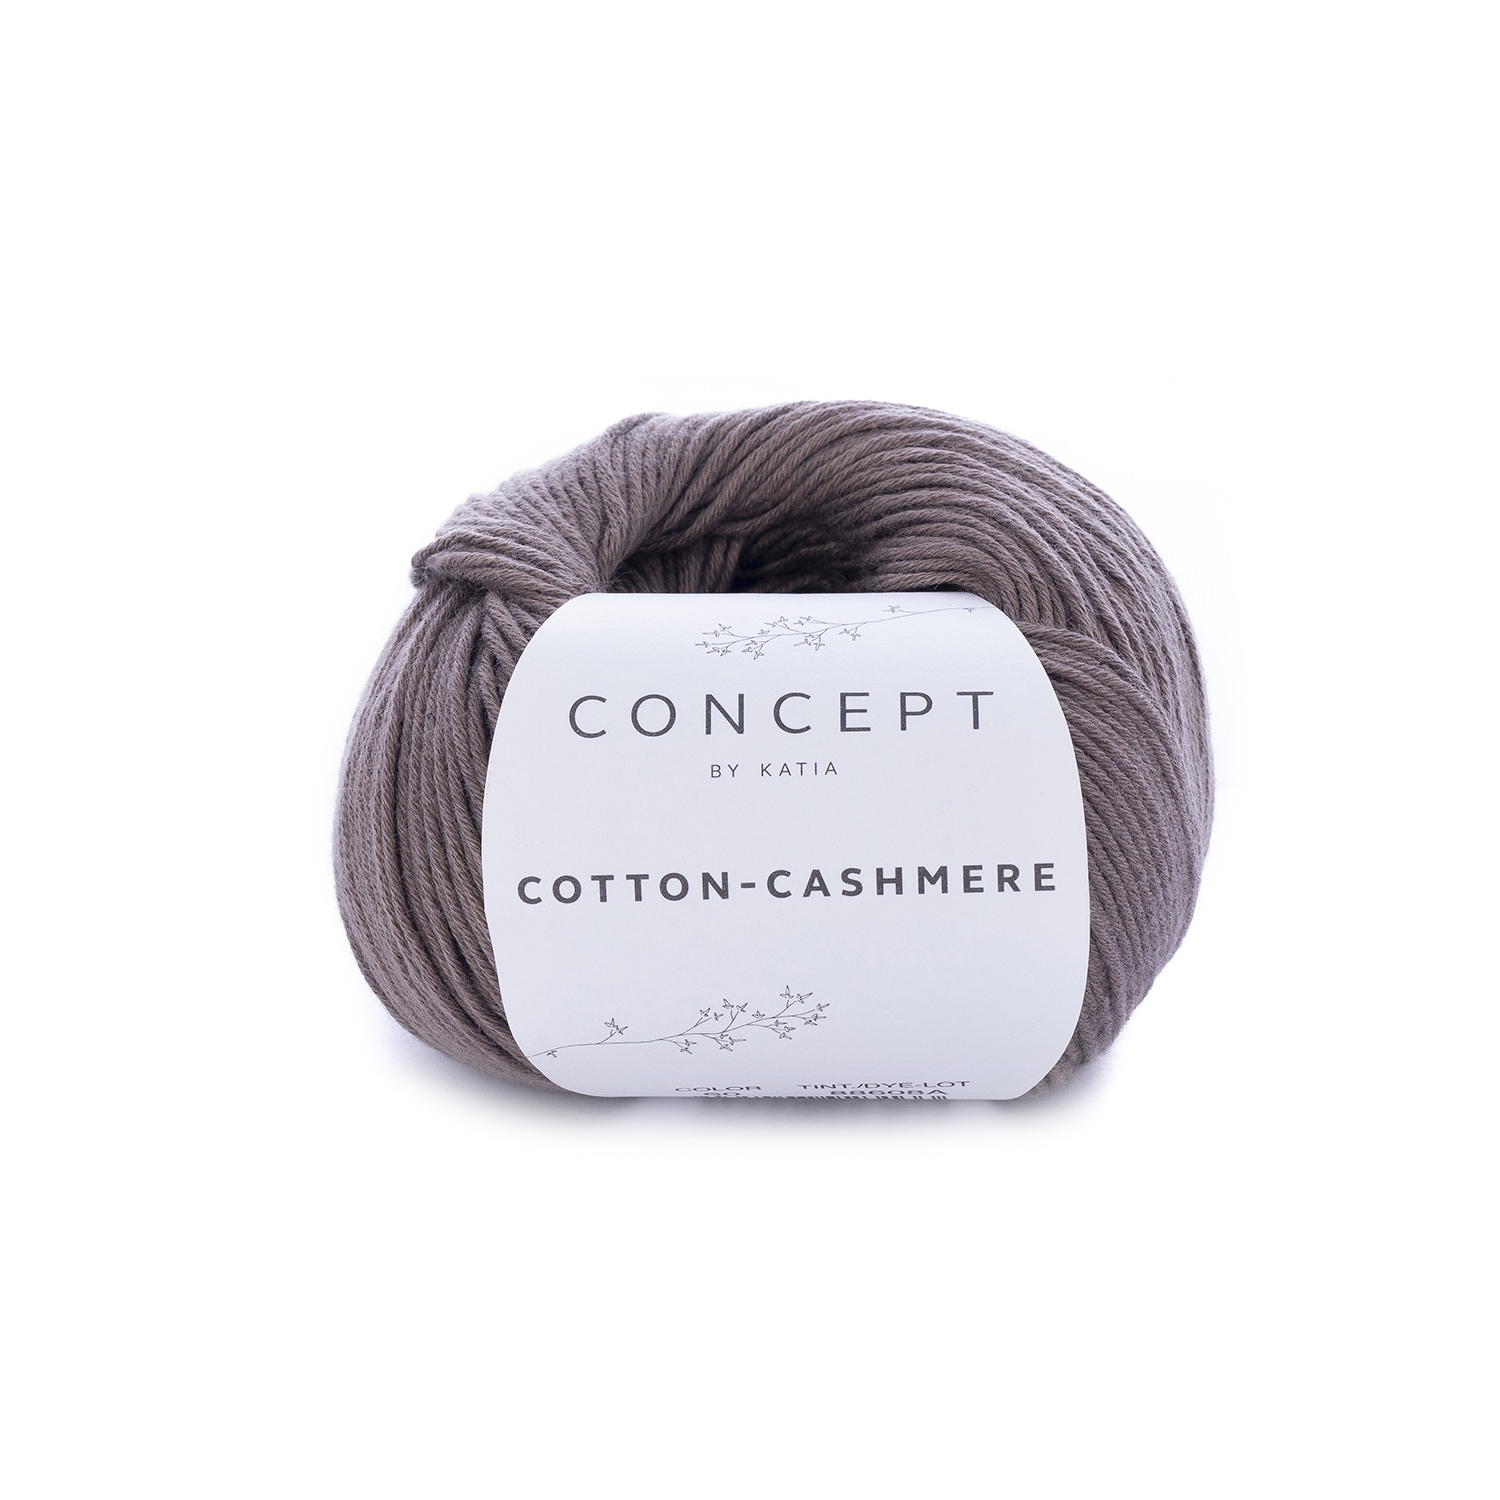 COTTON-CASHMERE - Autumn / Winter / Spring / Summer - yarns | Katia.com